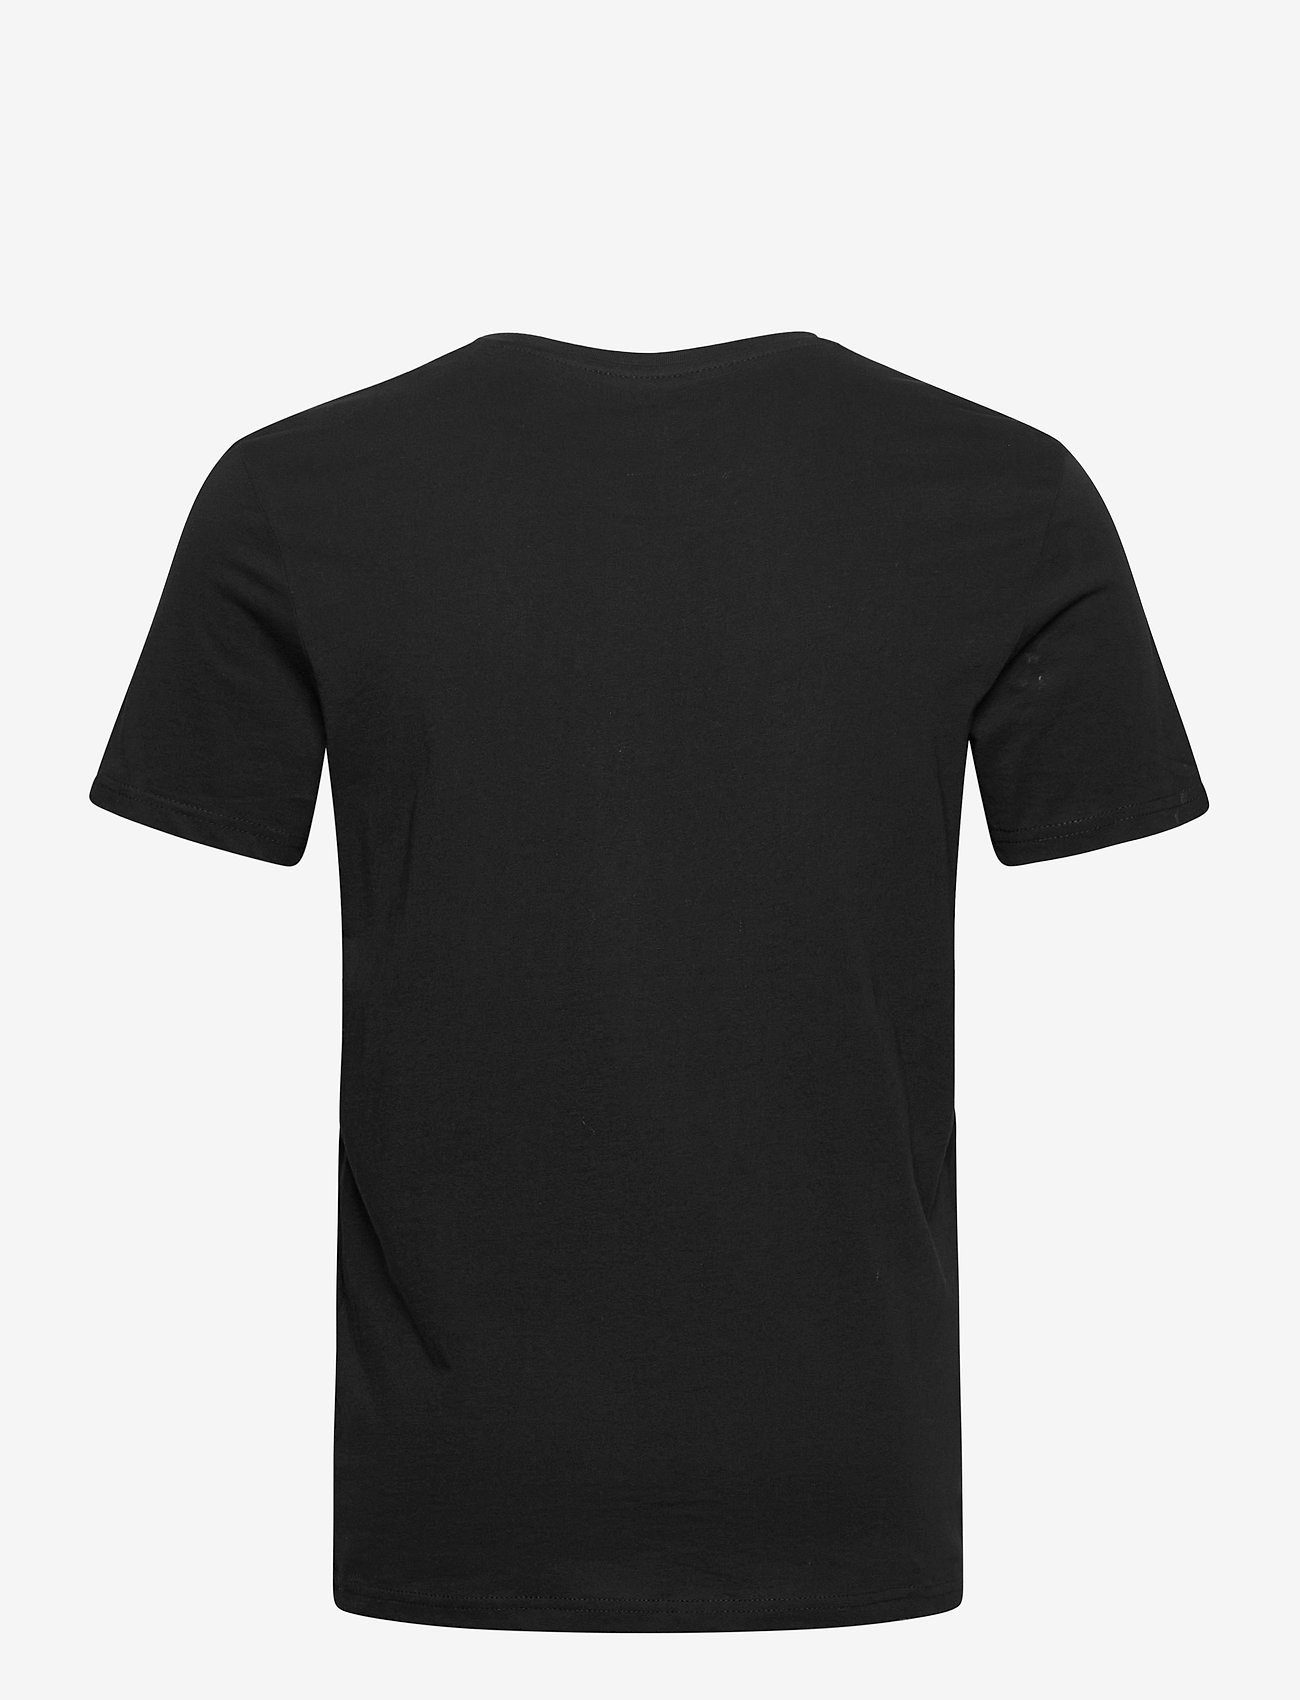 Tom Tailor t-shirt with - T-skjorter BLACK - Menn Klær